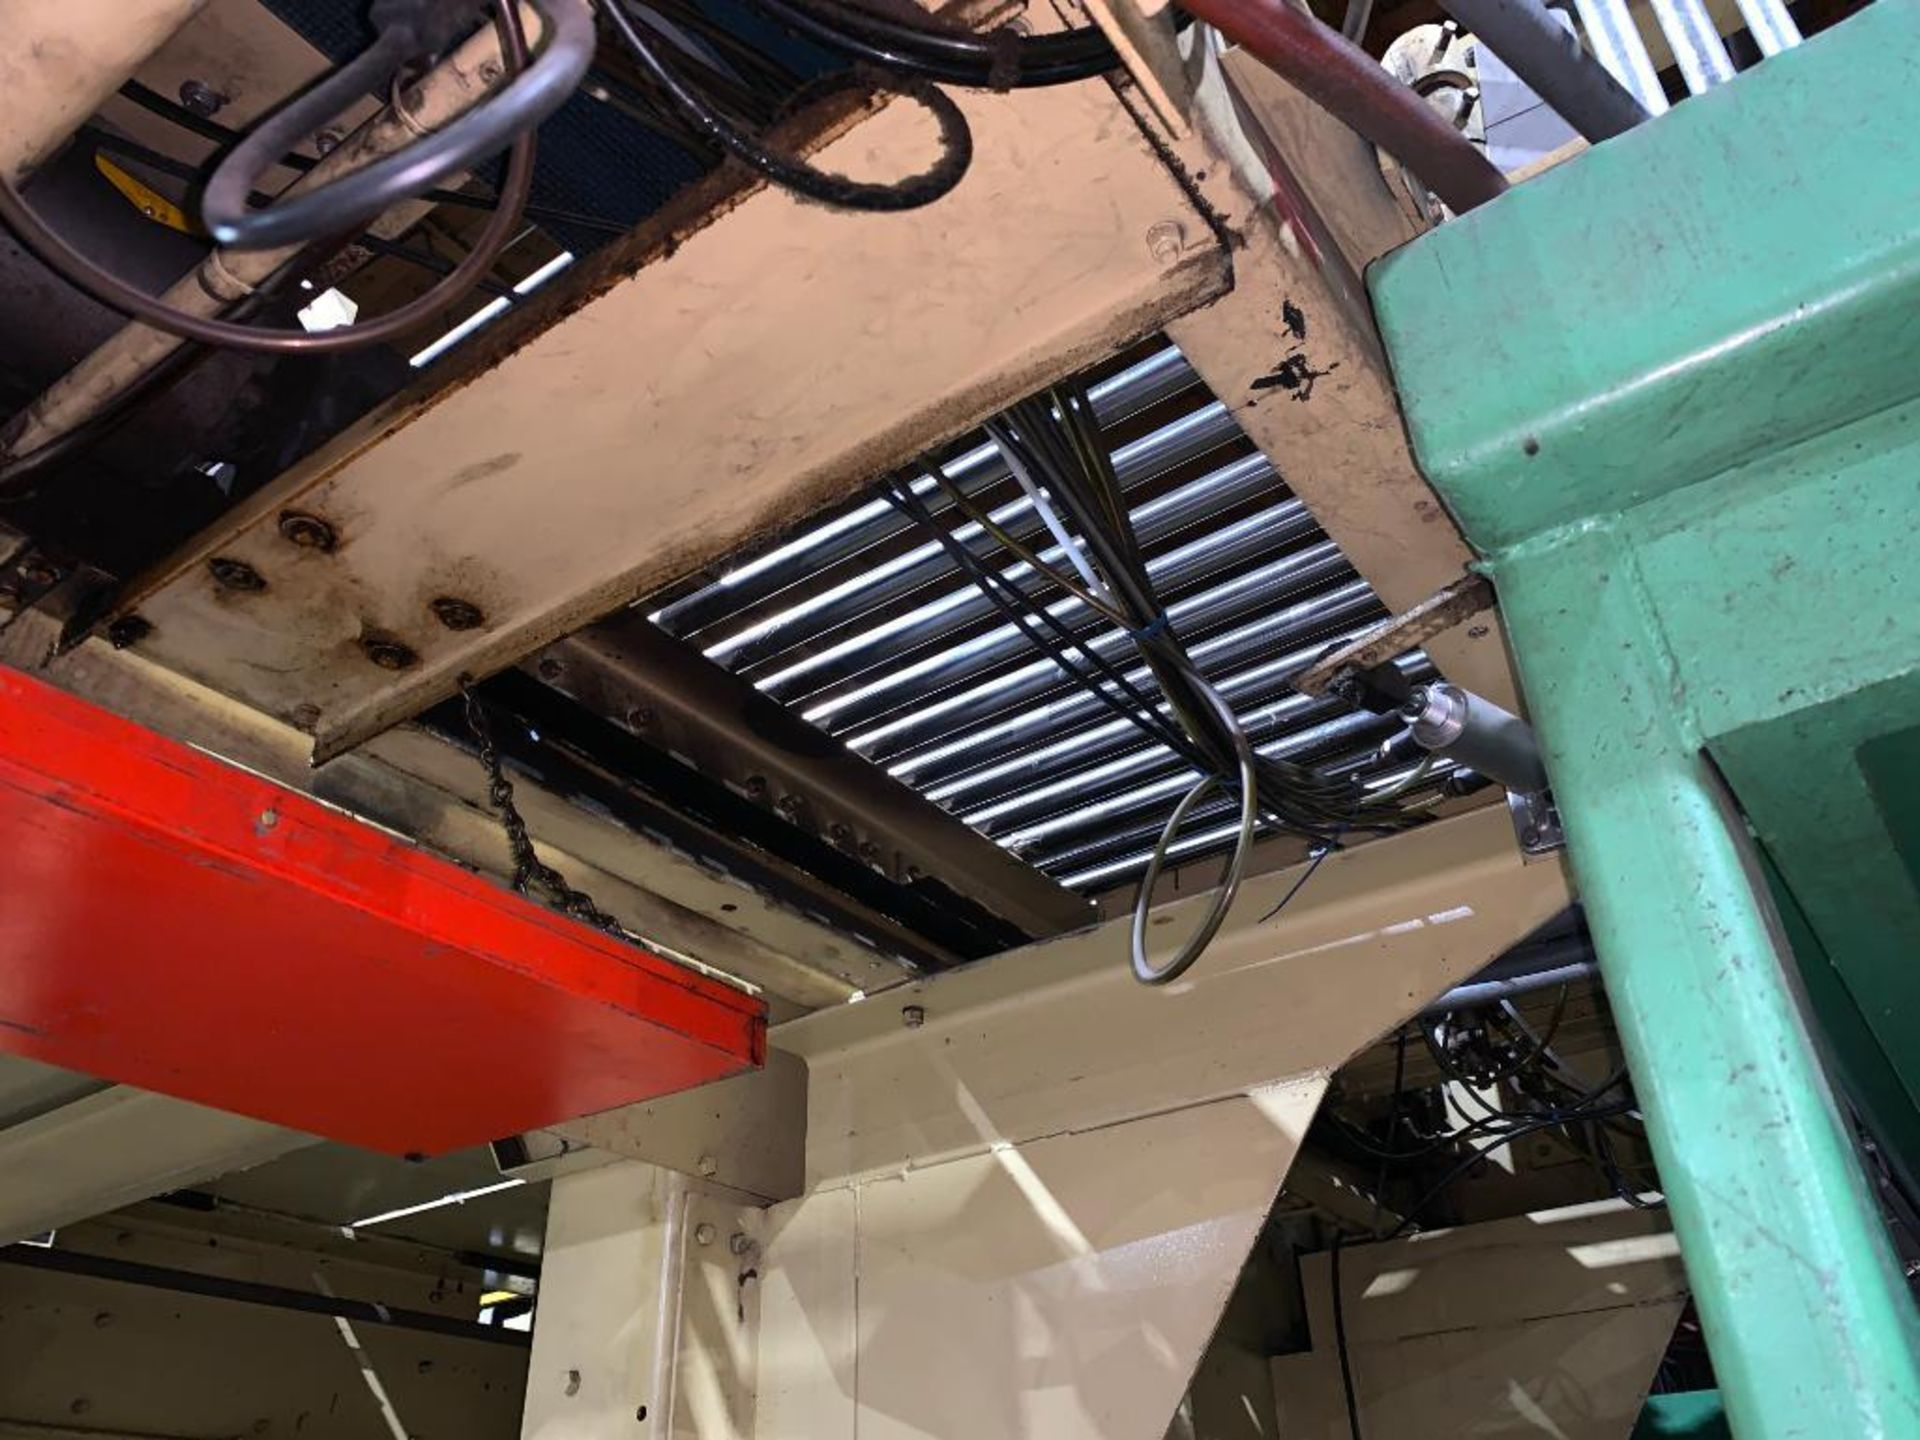 1992 Currie top to bottom palletizer, machine number LSP-5-1177 - Image 33 of 53